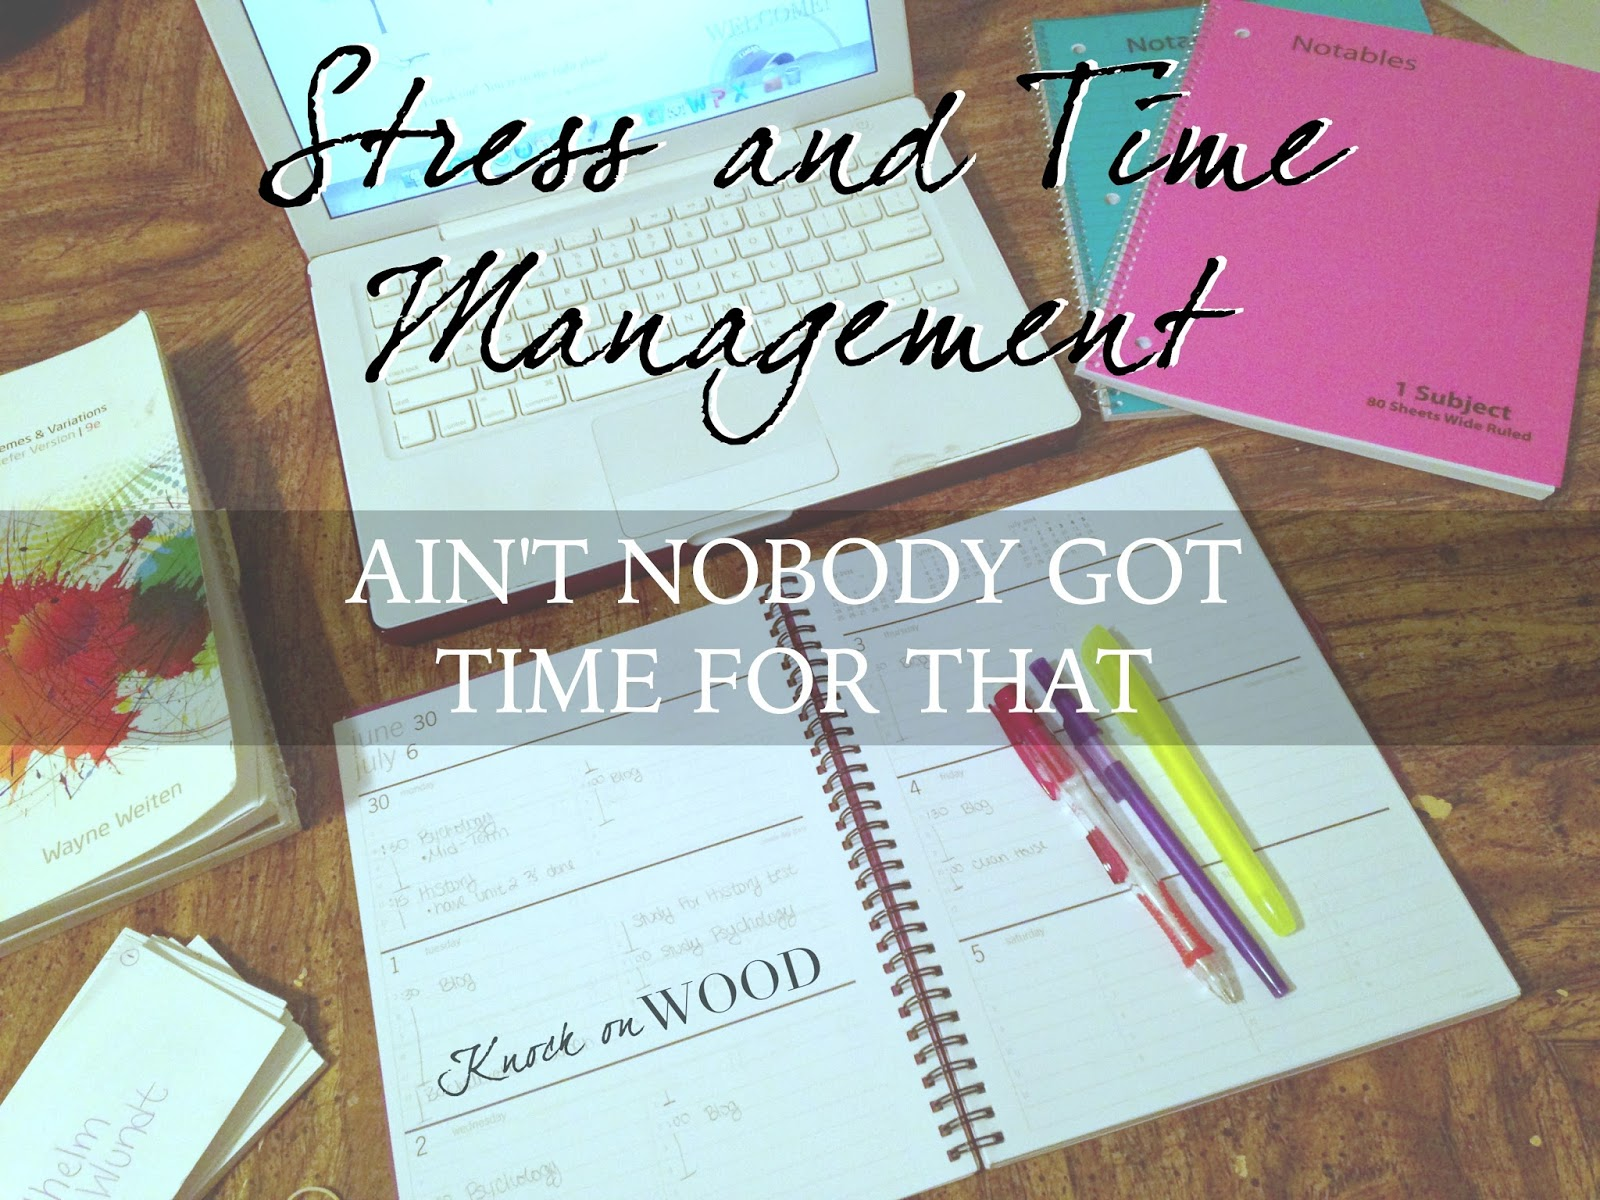 Stress and Time Management, Ain't nobody got time for that